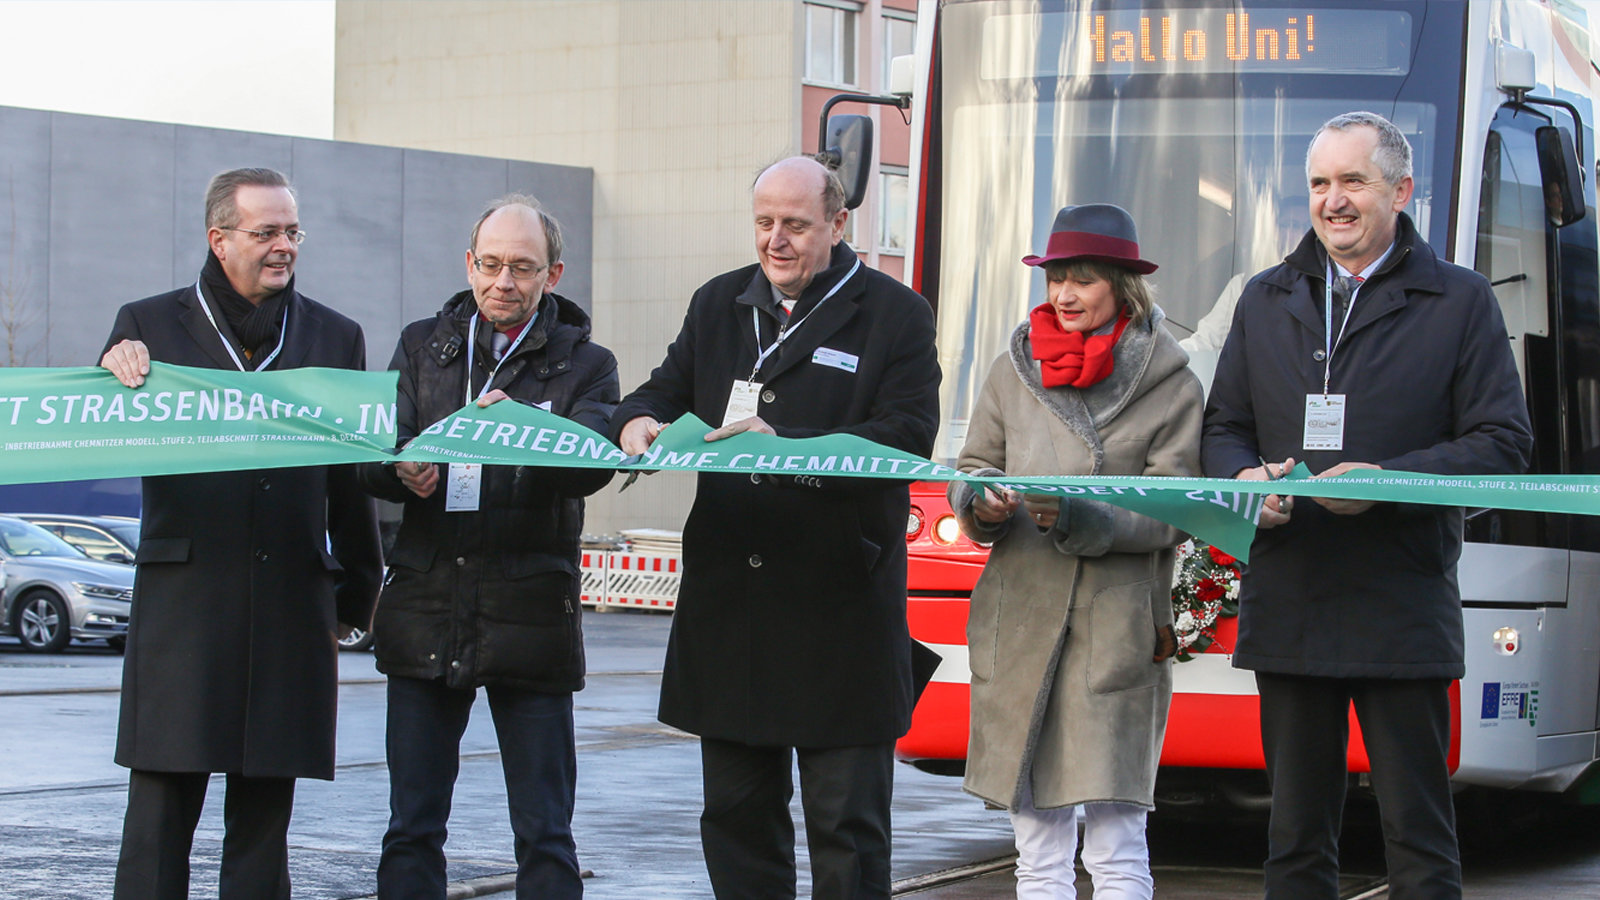 Representatives of State, District, City, and university symbolically cut a green ribbon